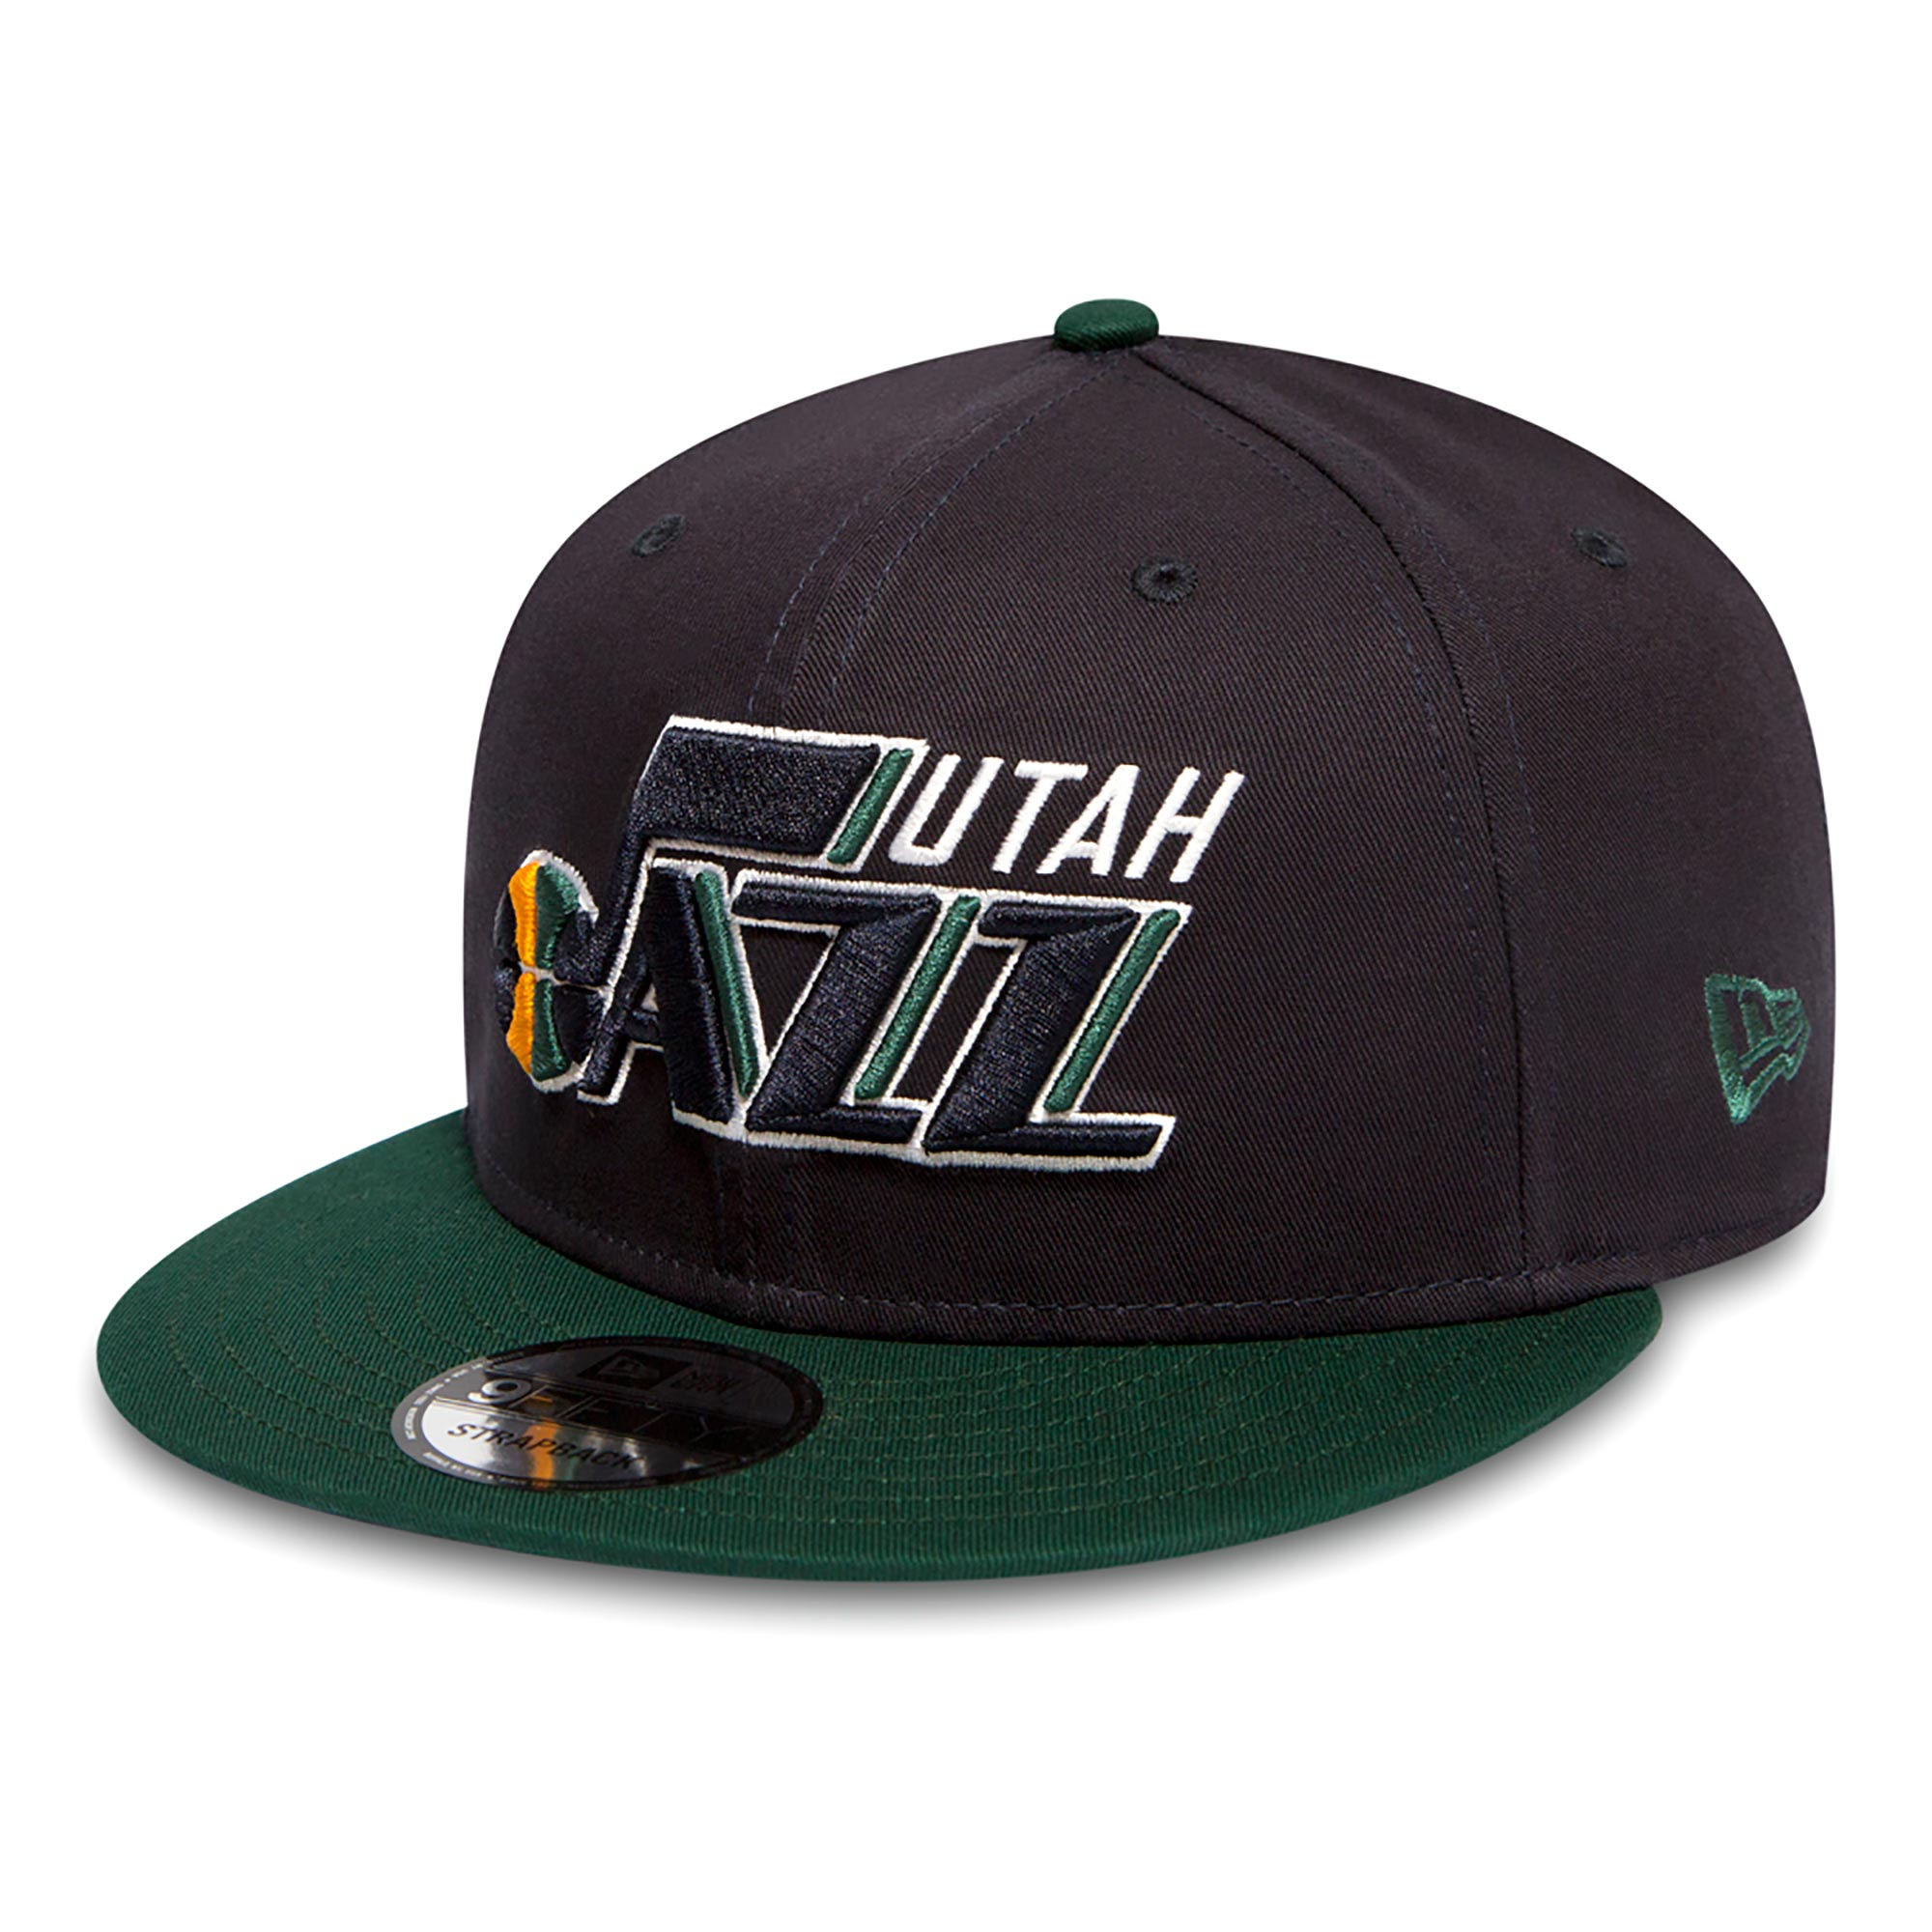 Utah Jazz New Era Basic 9FIFTY Snapback Cap